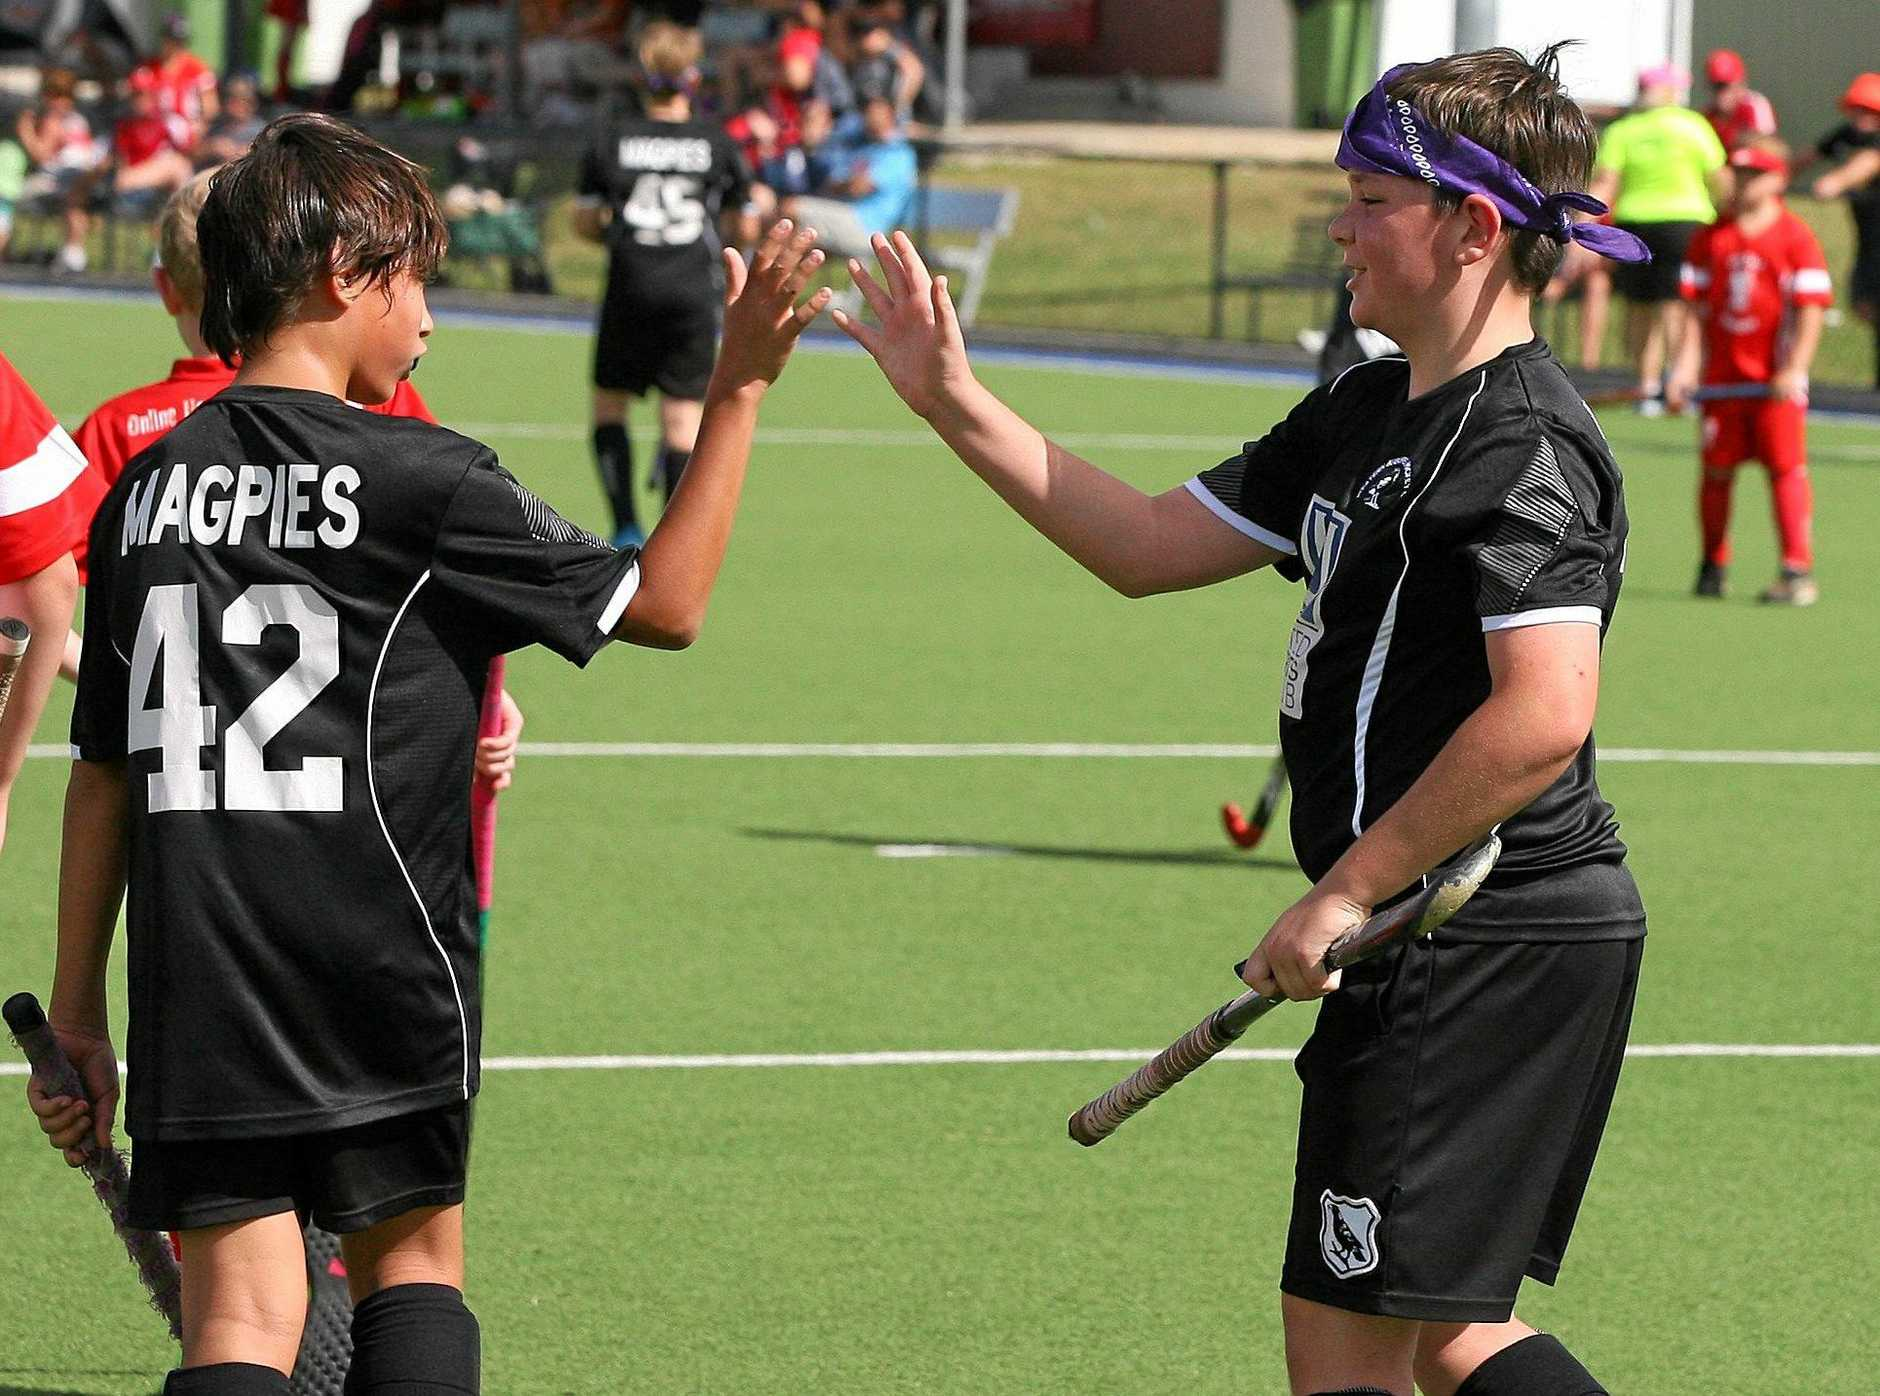 WELL DONE: Wests' junior and senior hockey players are hoping to celebrate more success in this year's Ipswich finals after some promising development work.